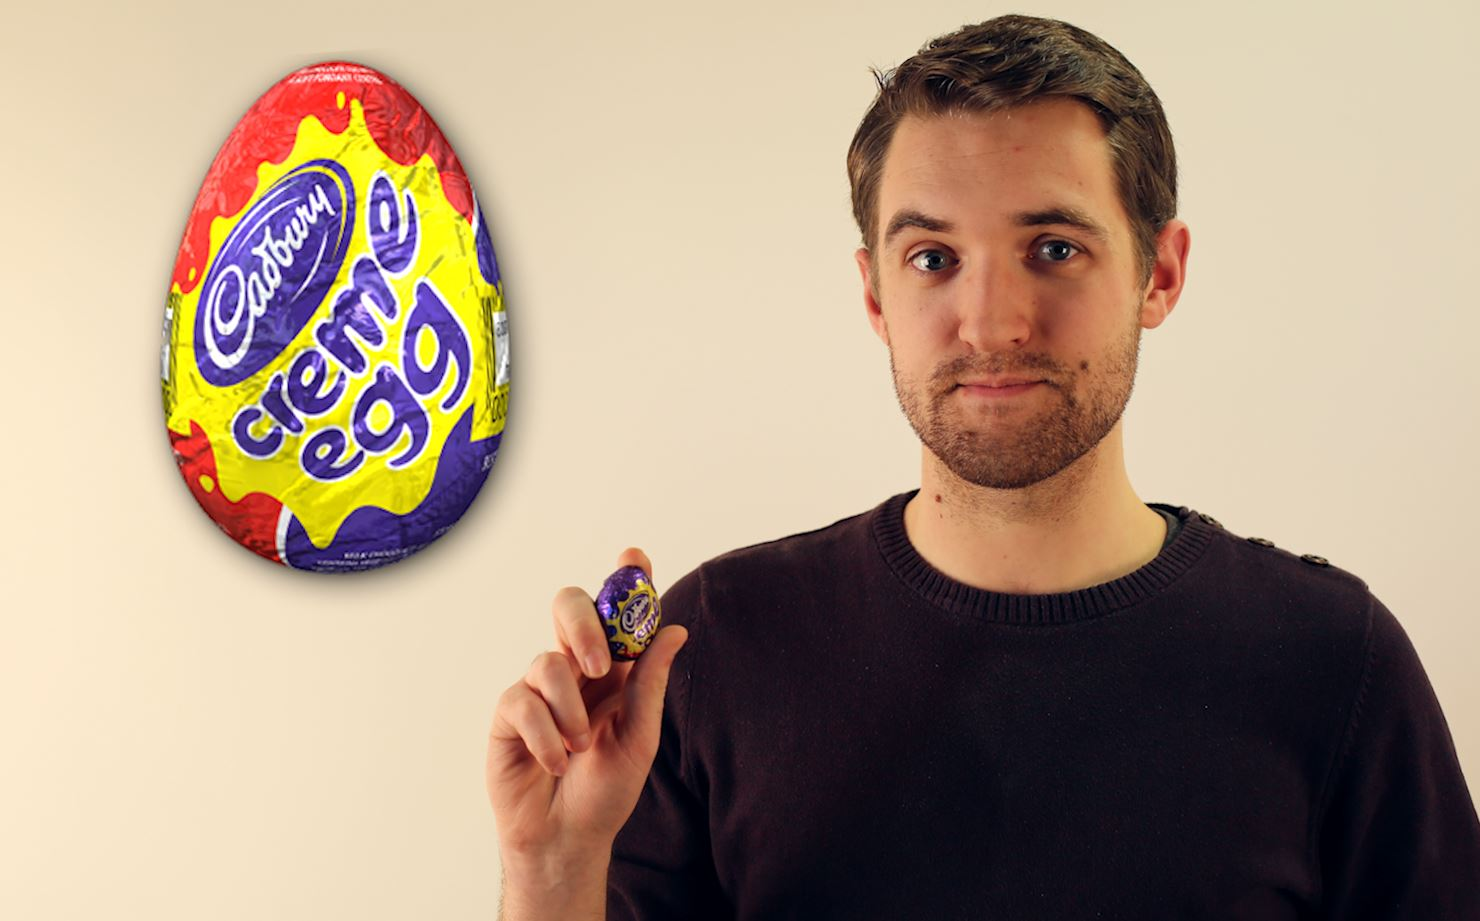 Cadbury Creme Egg taste test: Is the new egg better or worse?